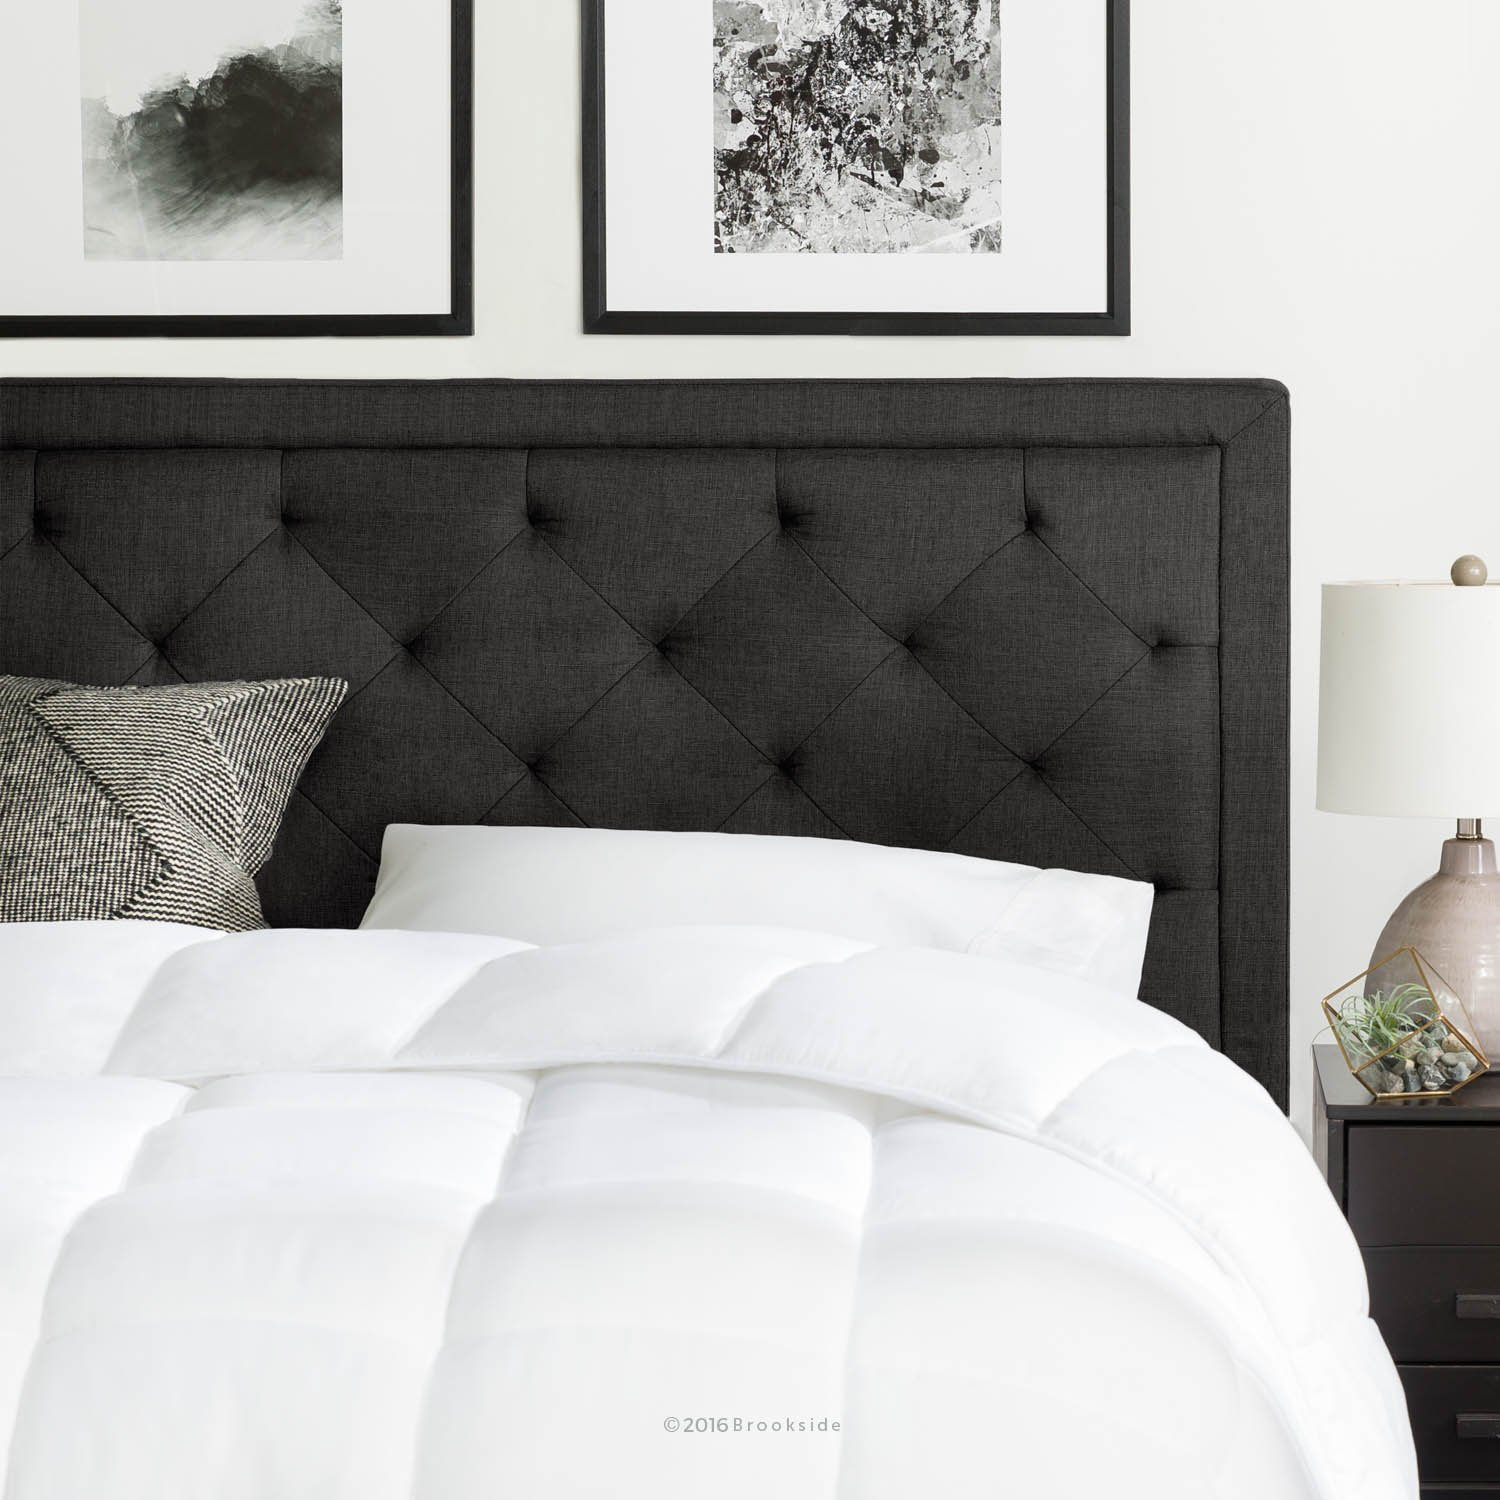 Brookside Upholstered Headboard with Diamond Tufting - King/California King - Charcoal by Brookside